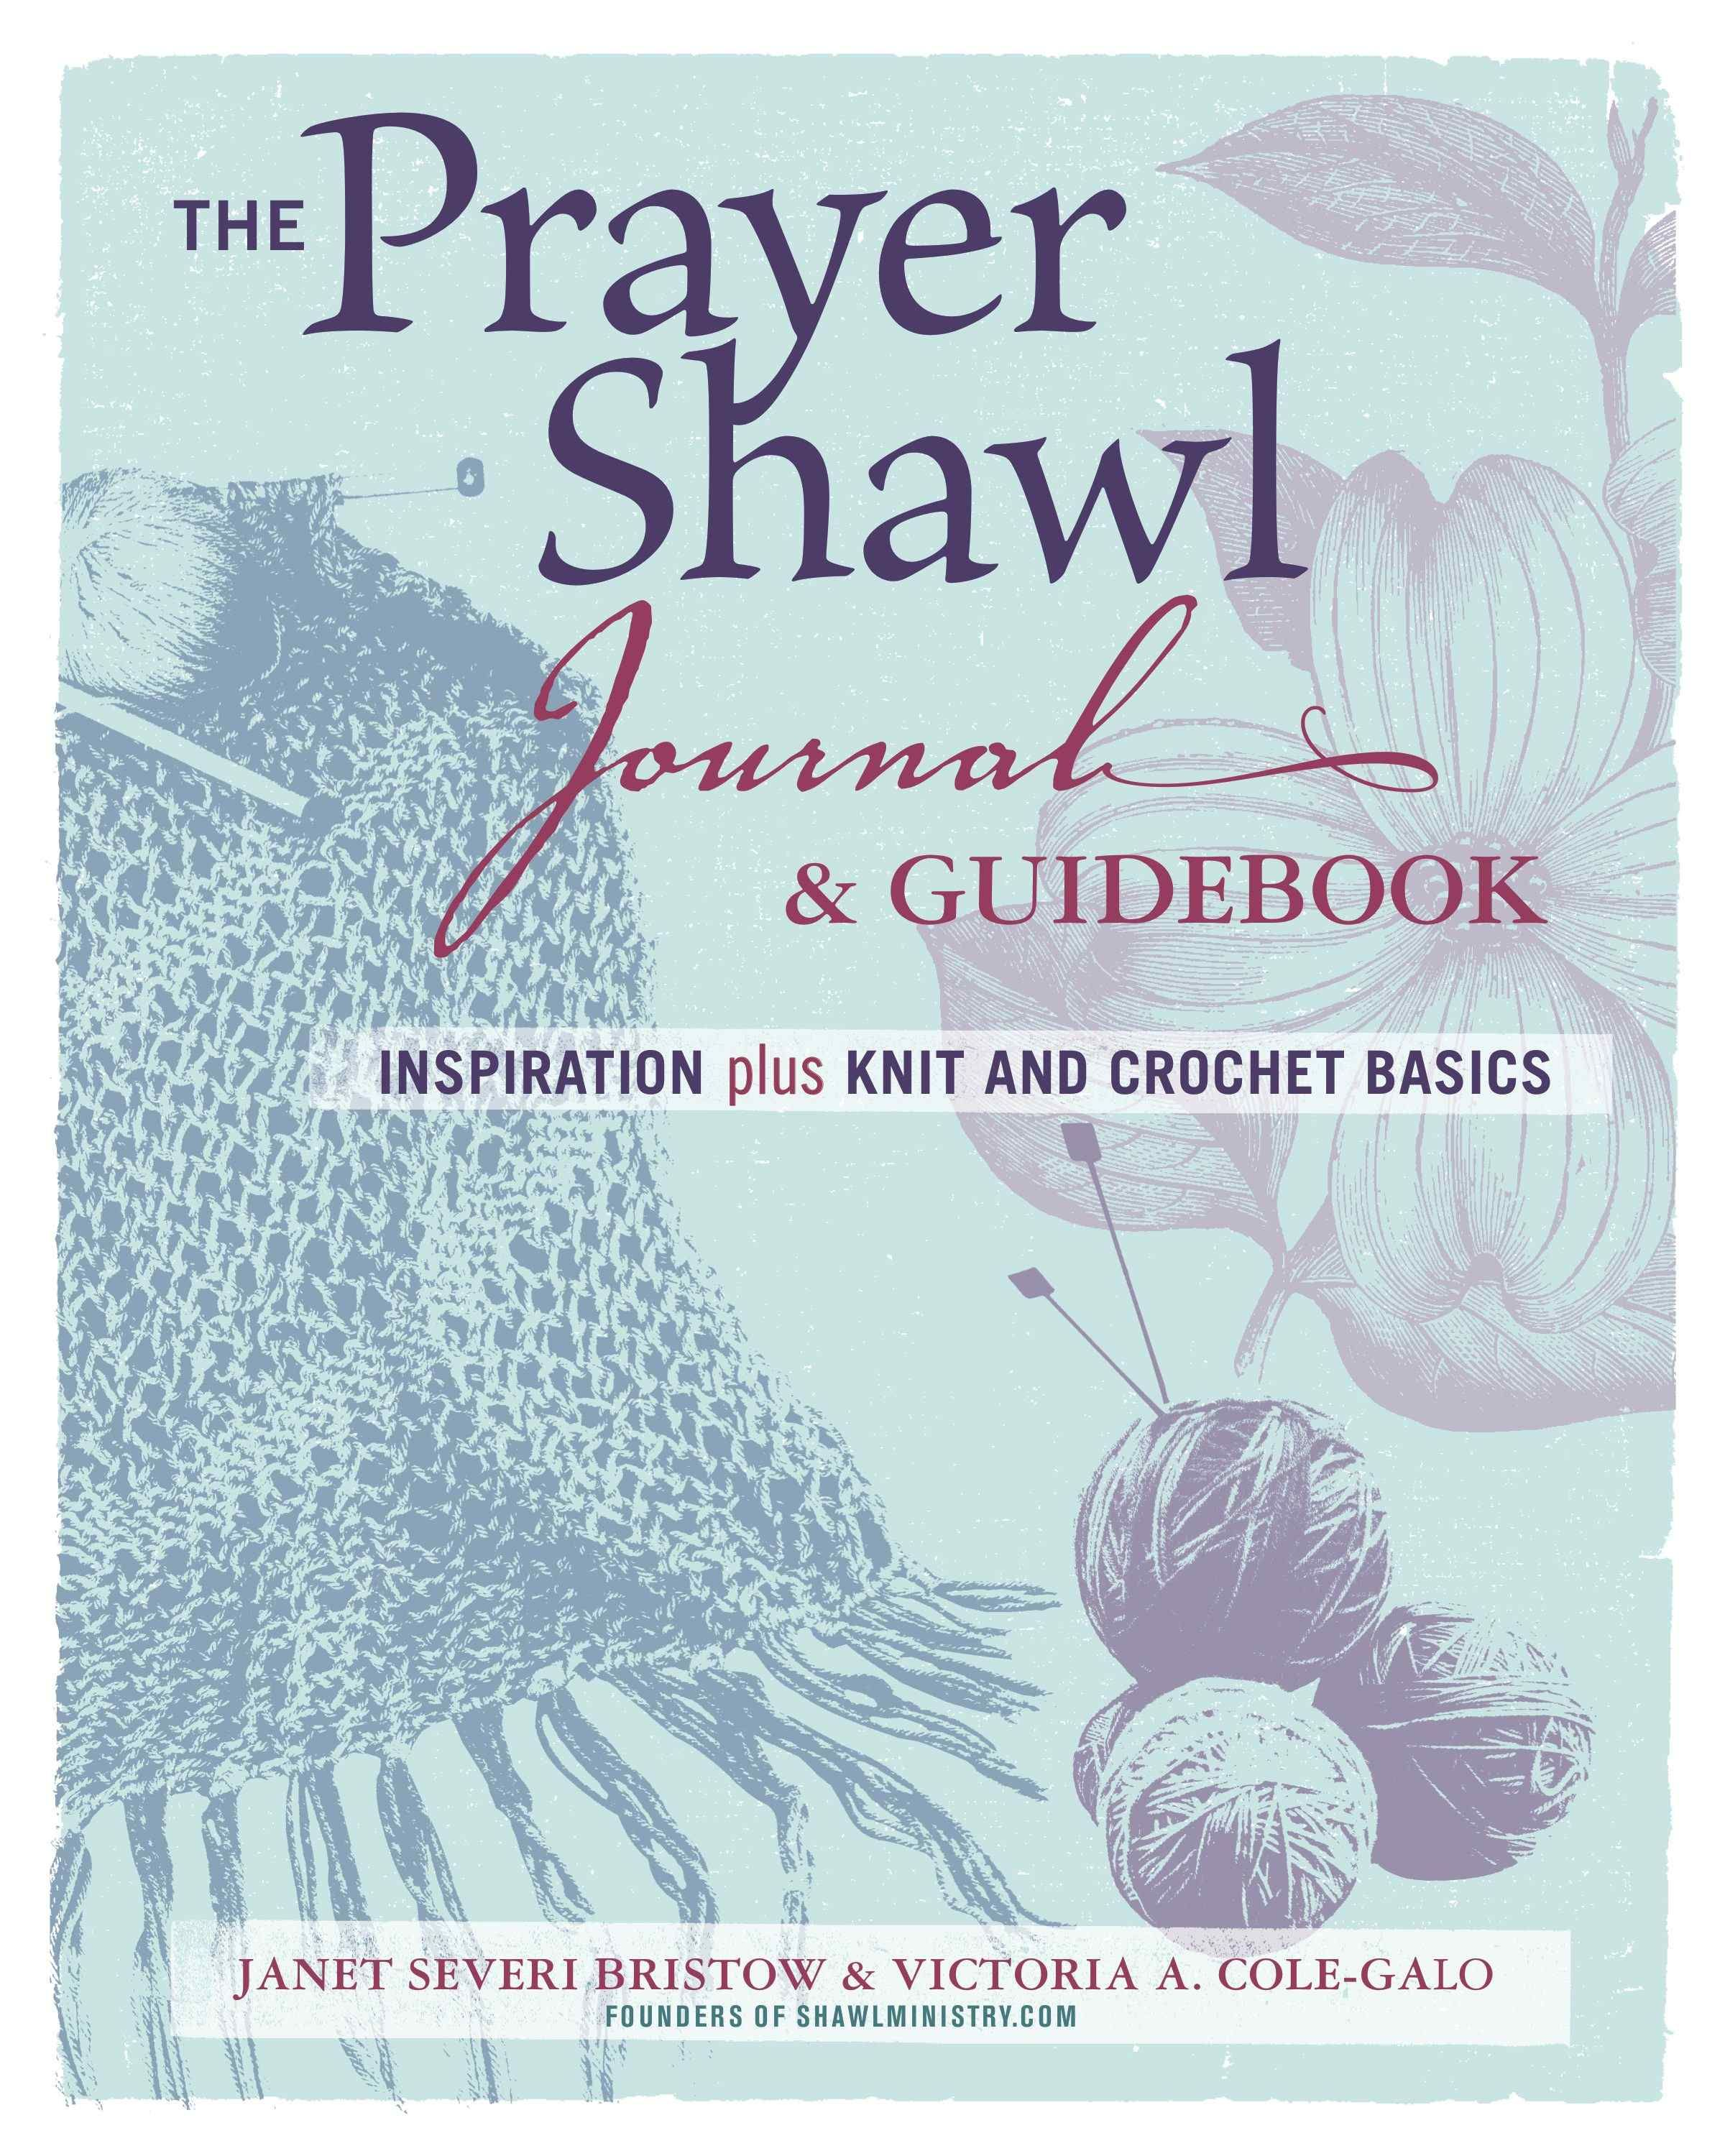 Prayer shawl journal as spiritual practice reckless abandonknit the prayer shawl journal guidebook inspiration plus knit and crochet basics continue to the product at the image link bankloansurffo Image collections